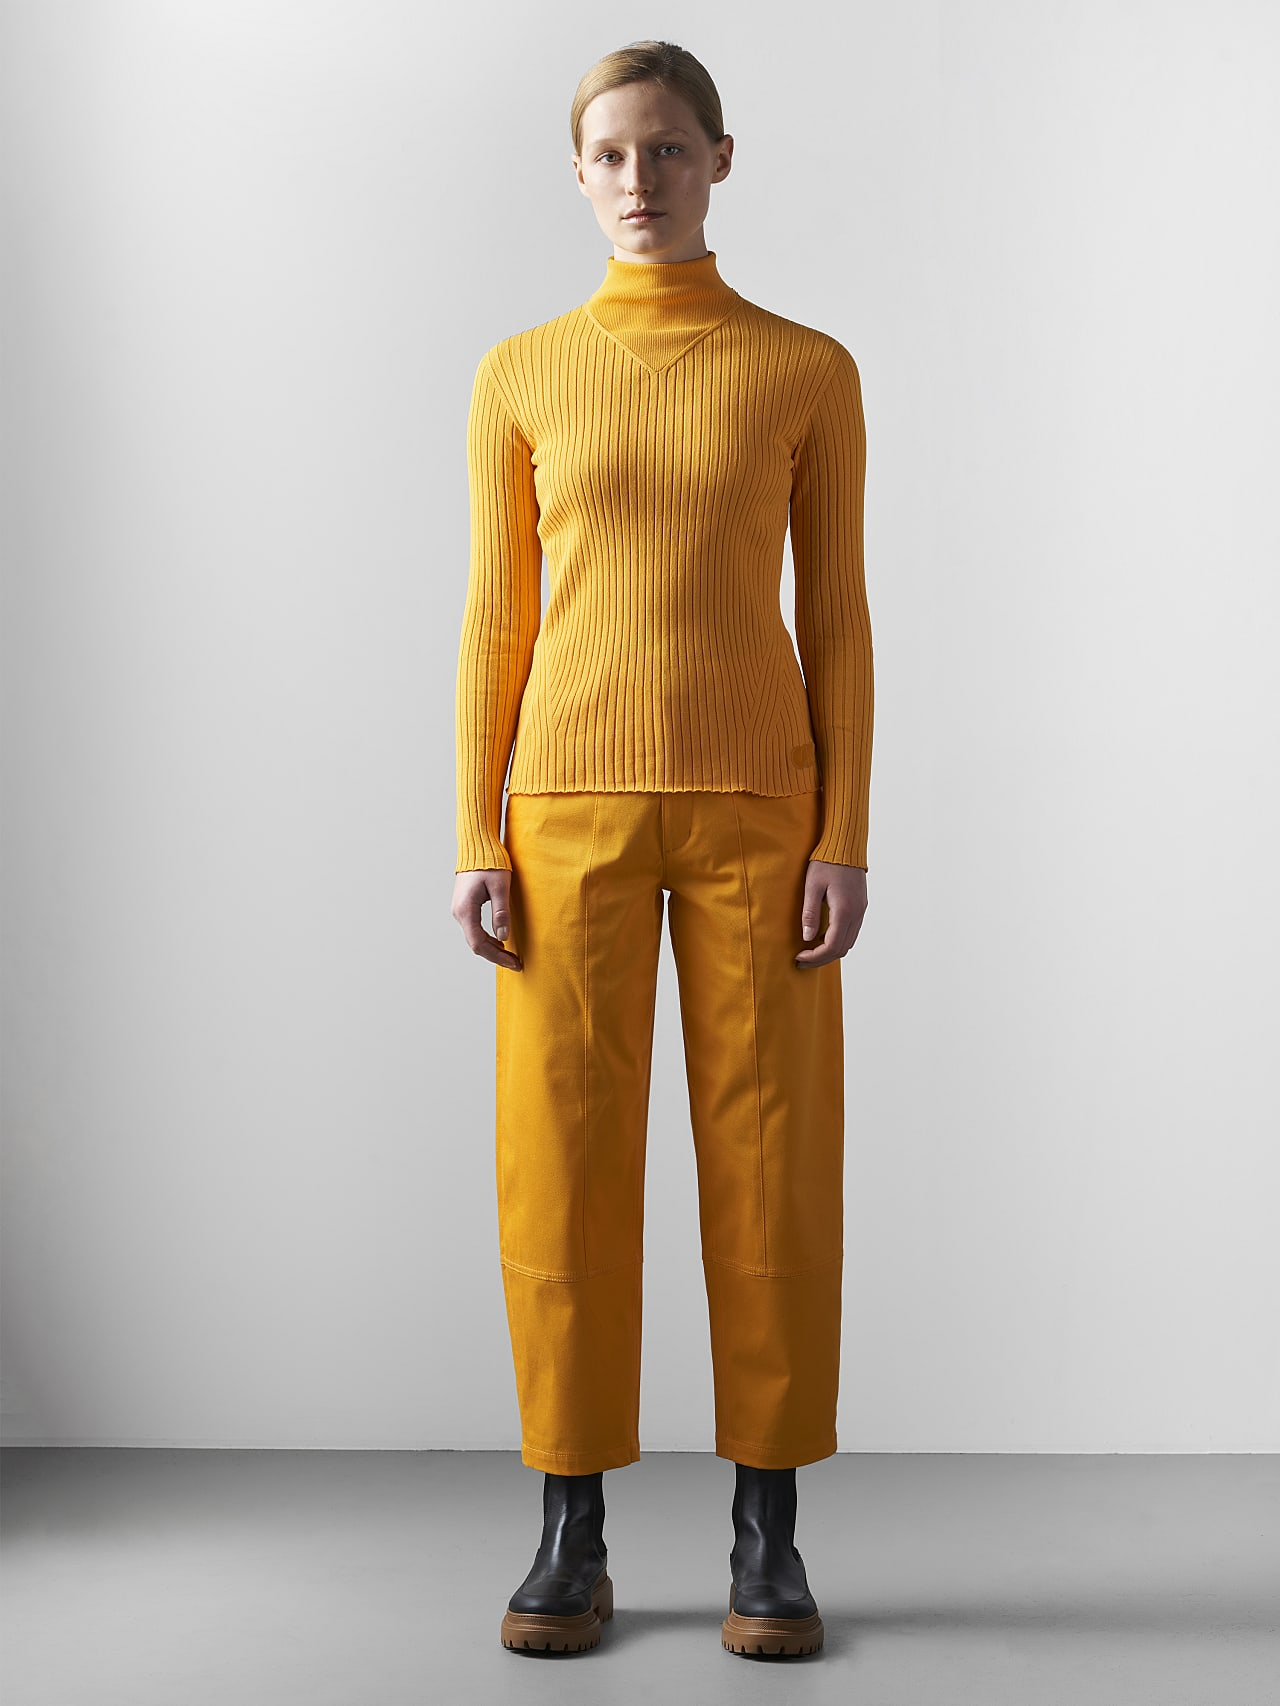 FAXEE V1.Y5.02 Seamless 3D Knit Mock-Neck Jumper yellow Front Alpha Tauri